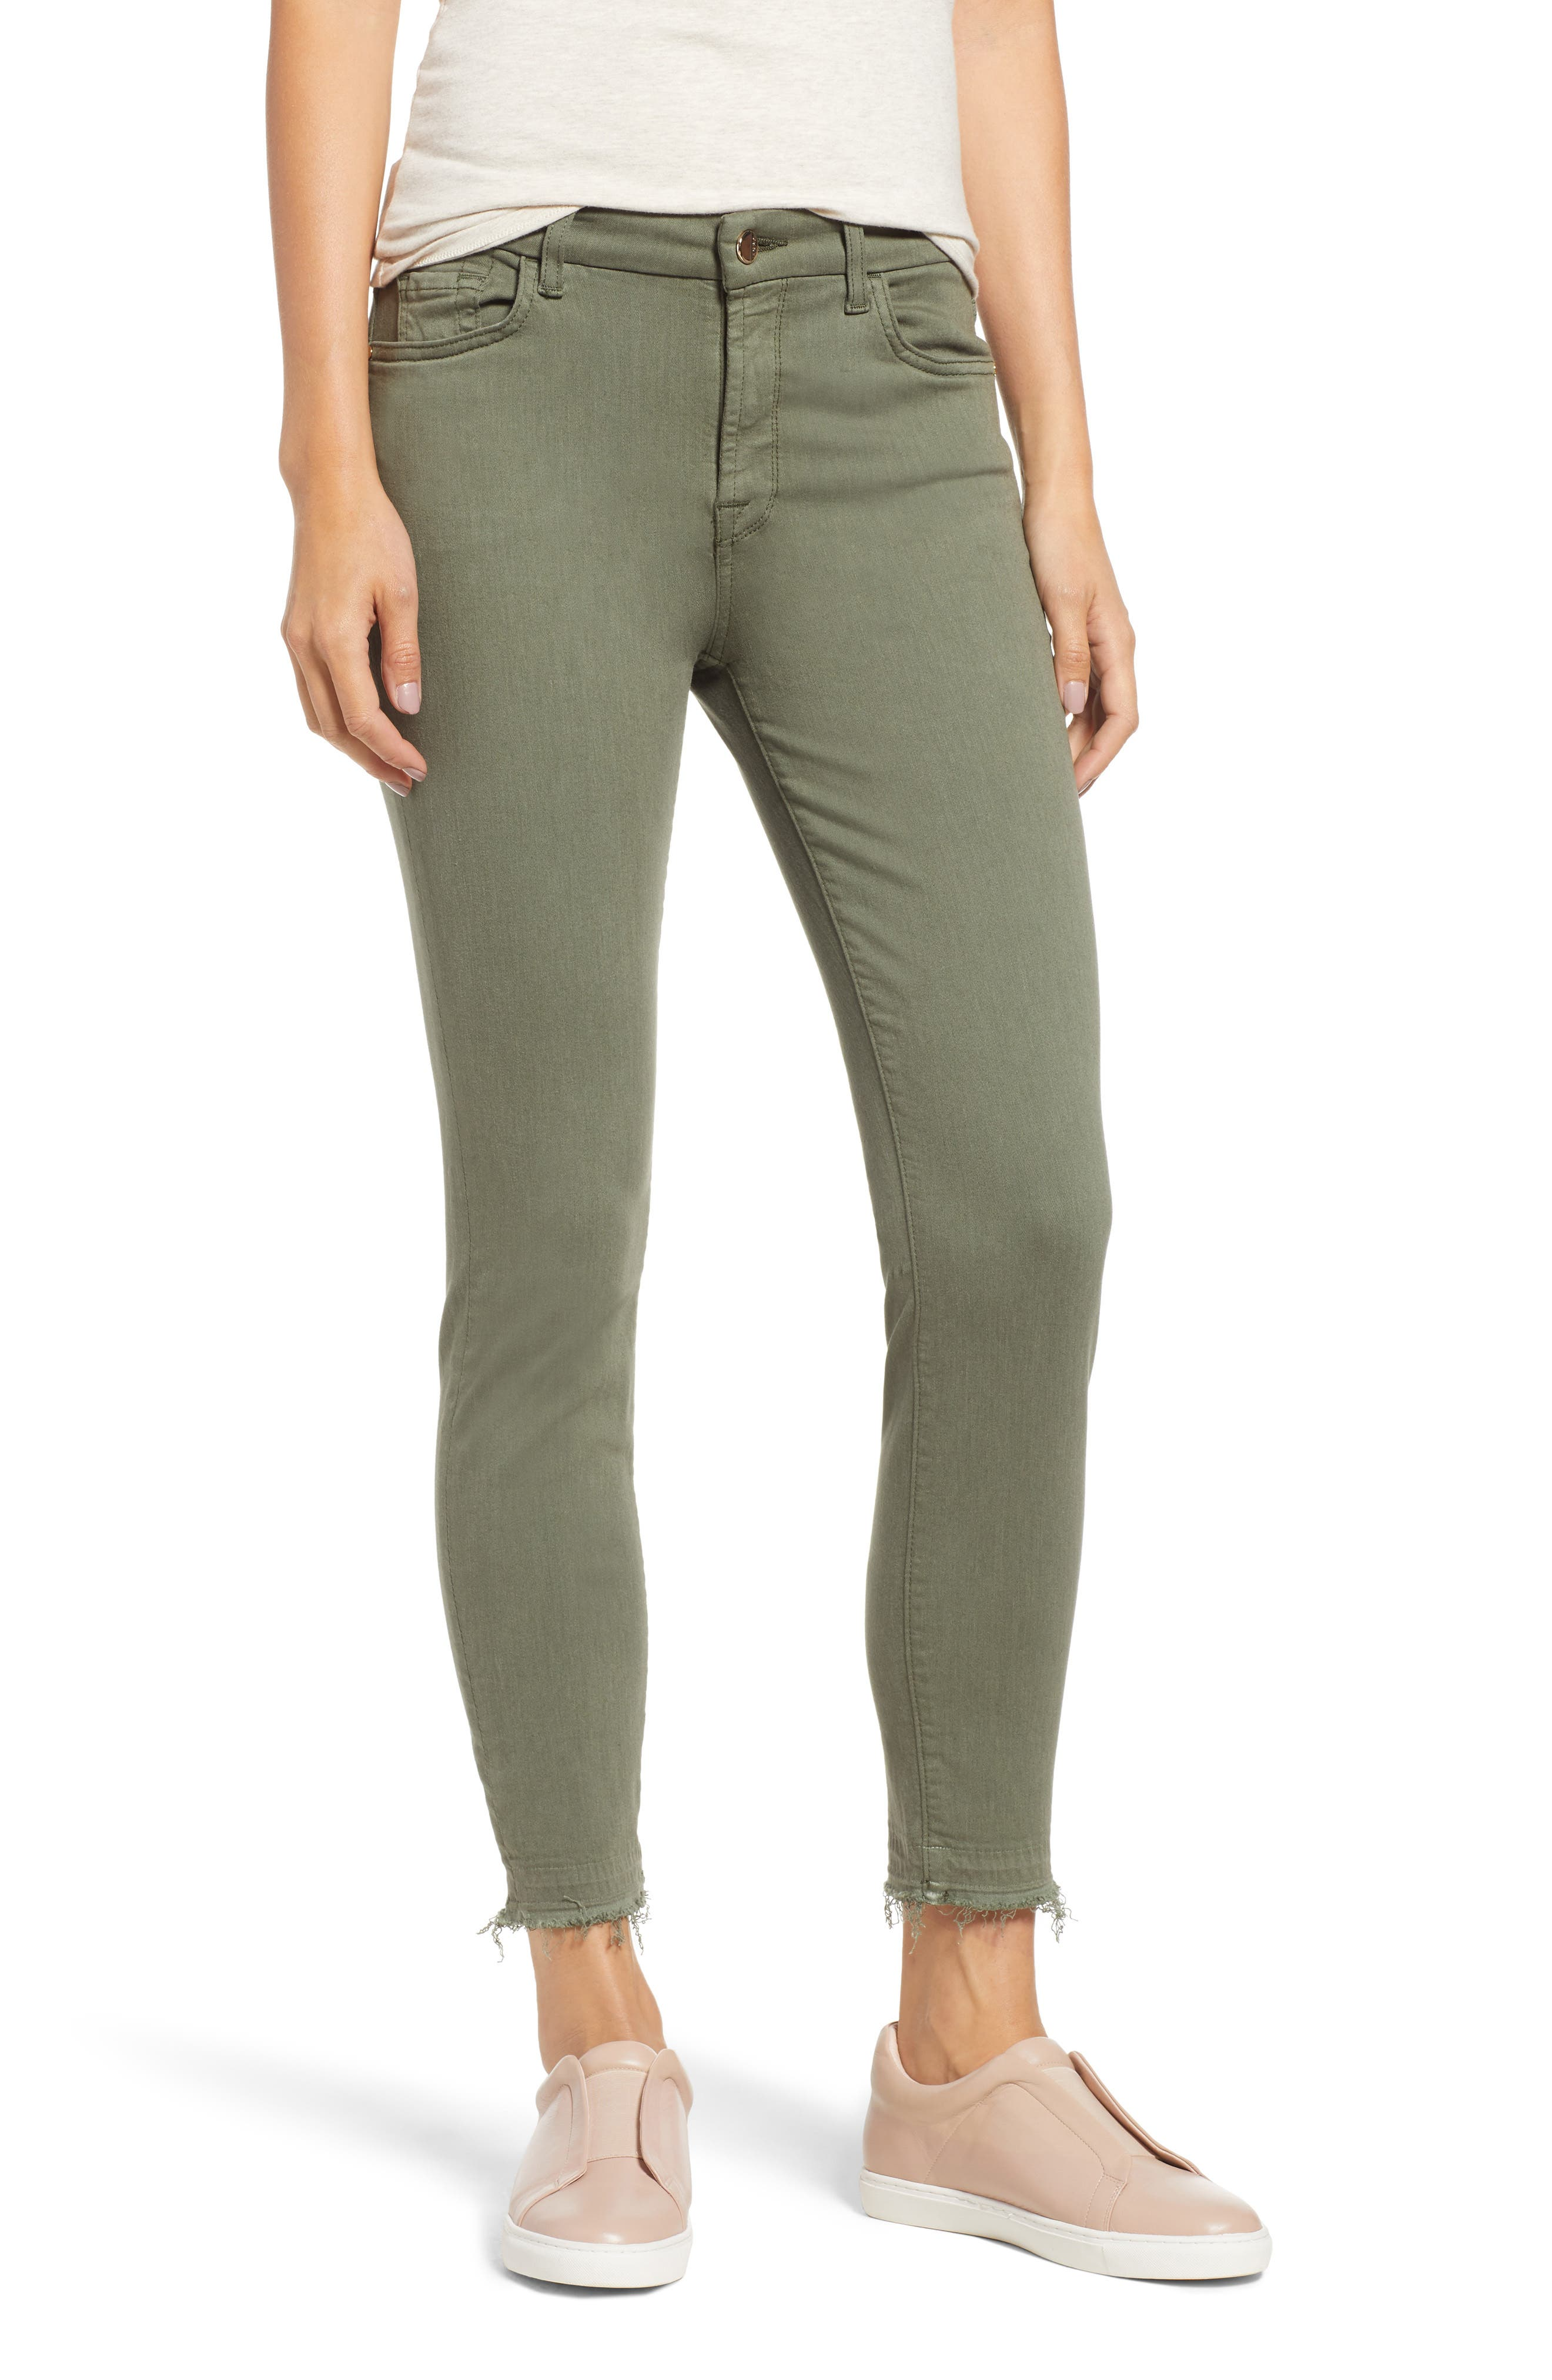 JEN7 BY 7 FOR ALL MANKIND, Release Hem Colored Ankle Skinny Jeans, Main thumbnail 1, color, WASHED FATIGUE